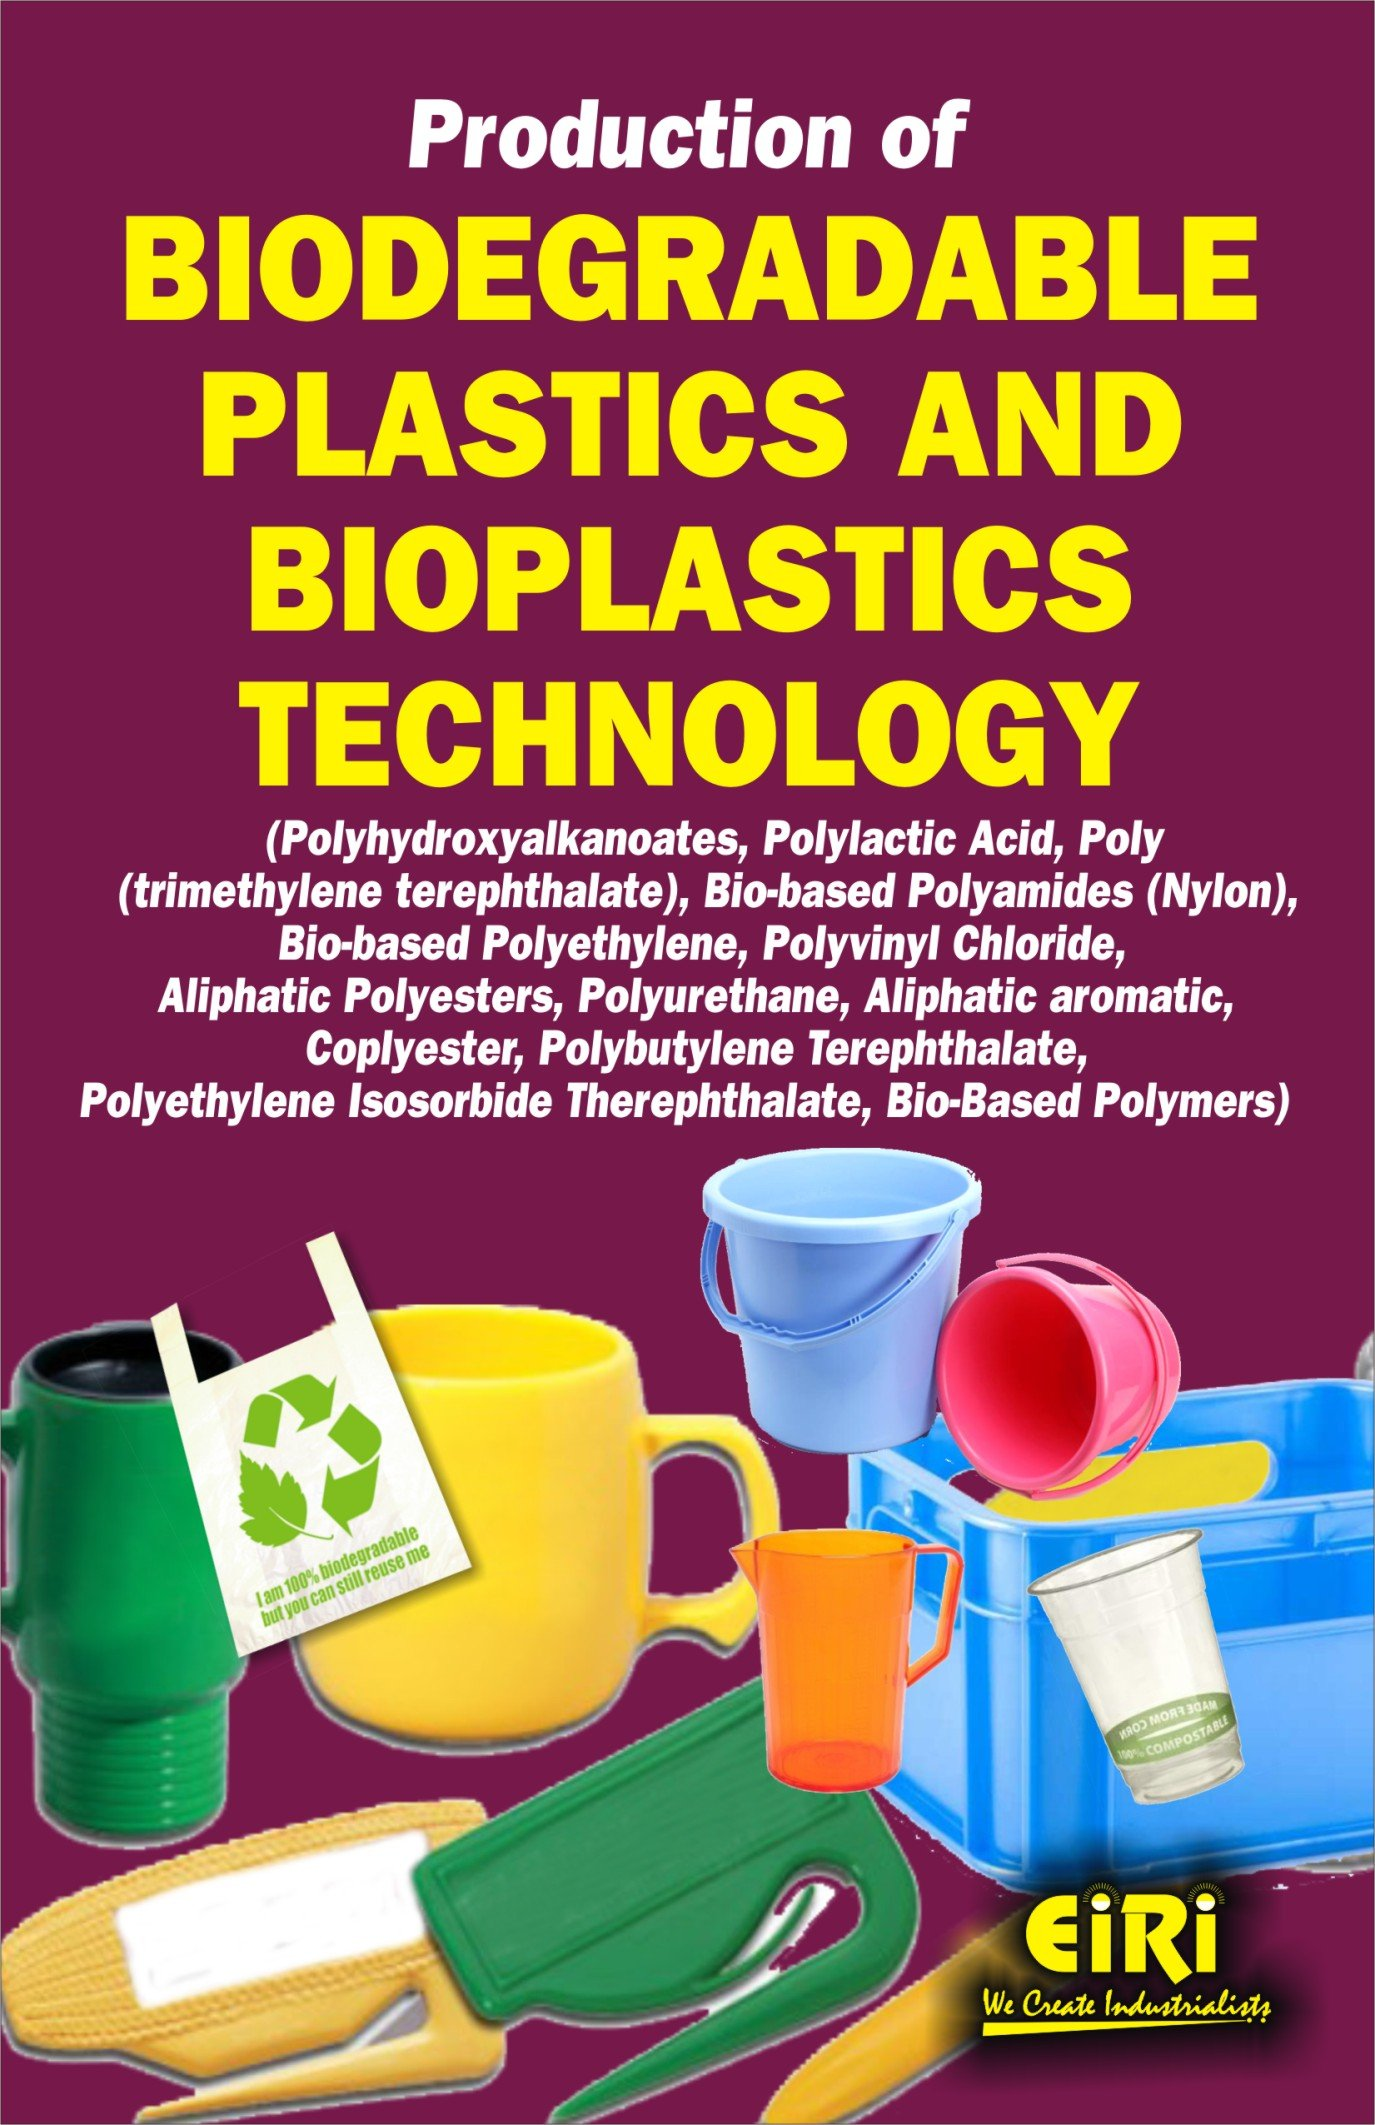 Production of Biodegradable Plastics and Bioplastics Technology ...